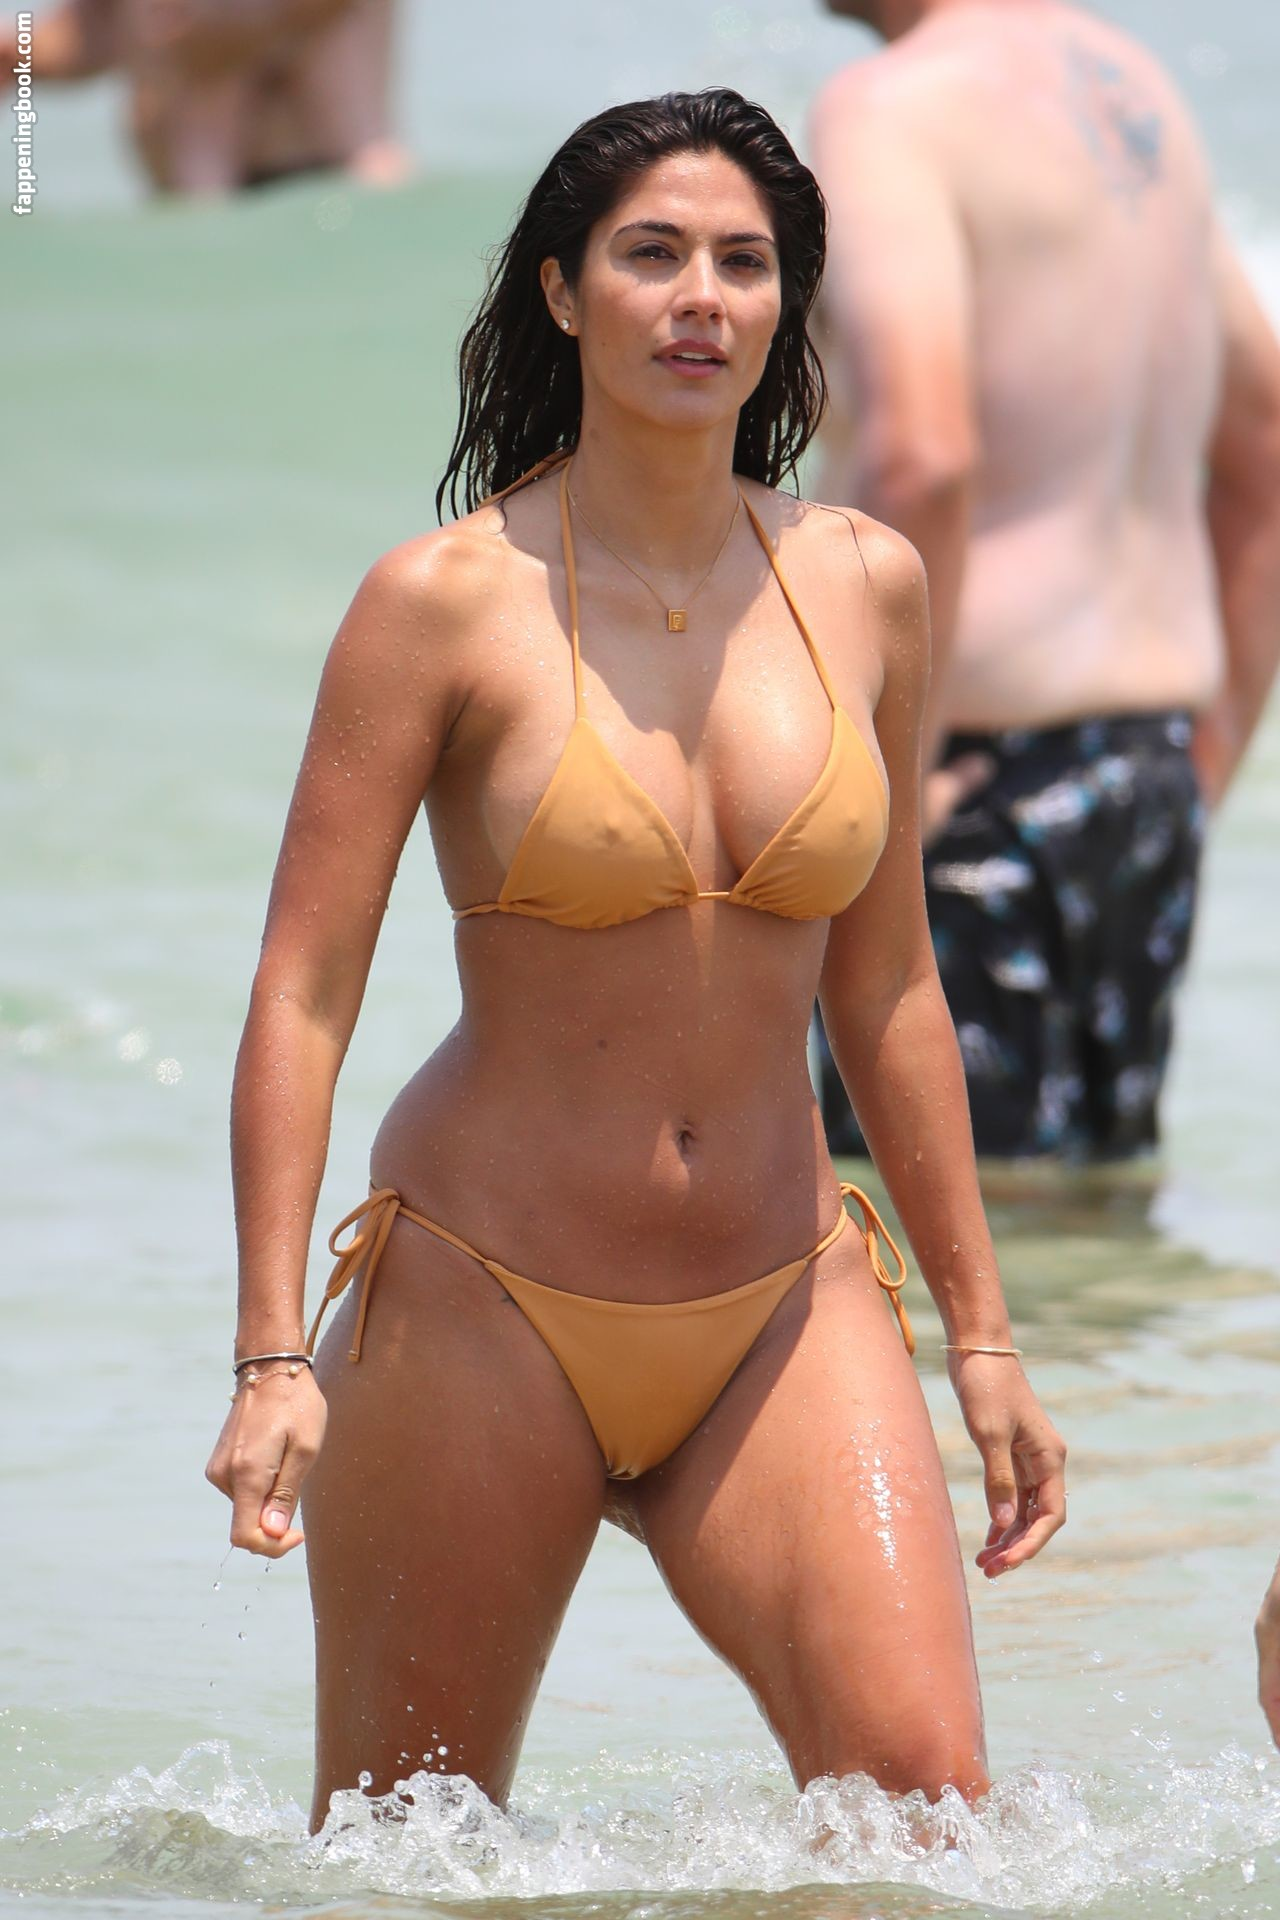 Demi Rose Pokies | The Fappening. 2014-2020 celebrity